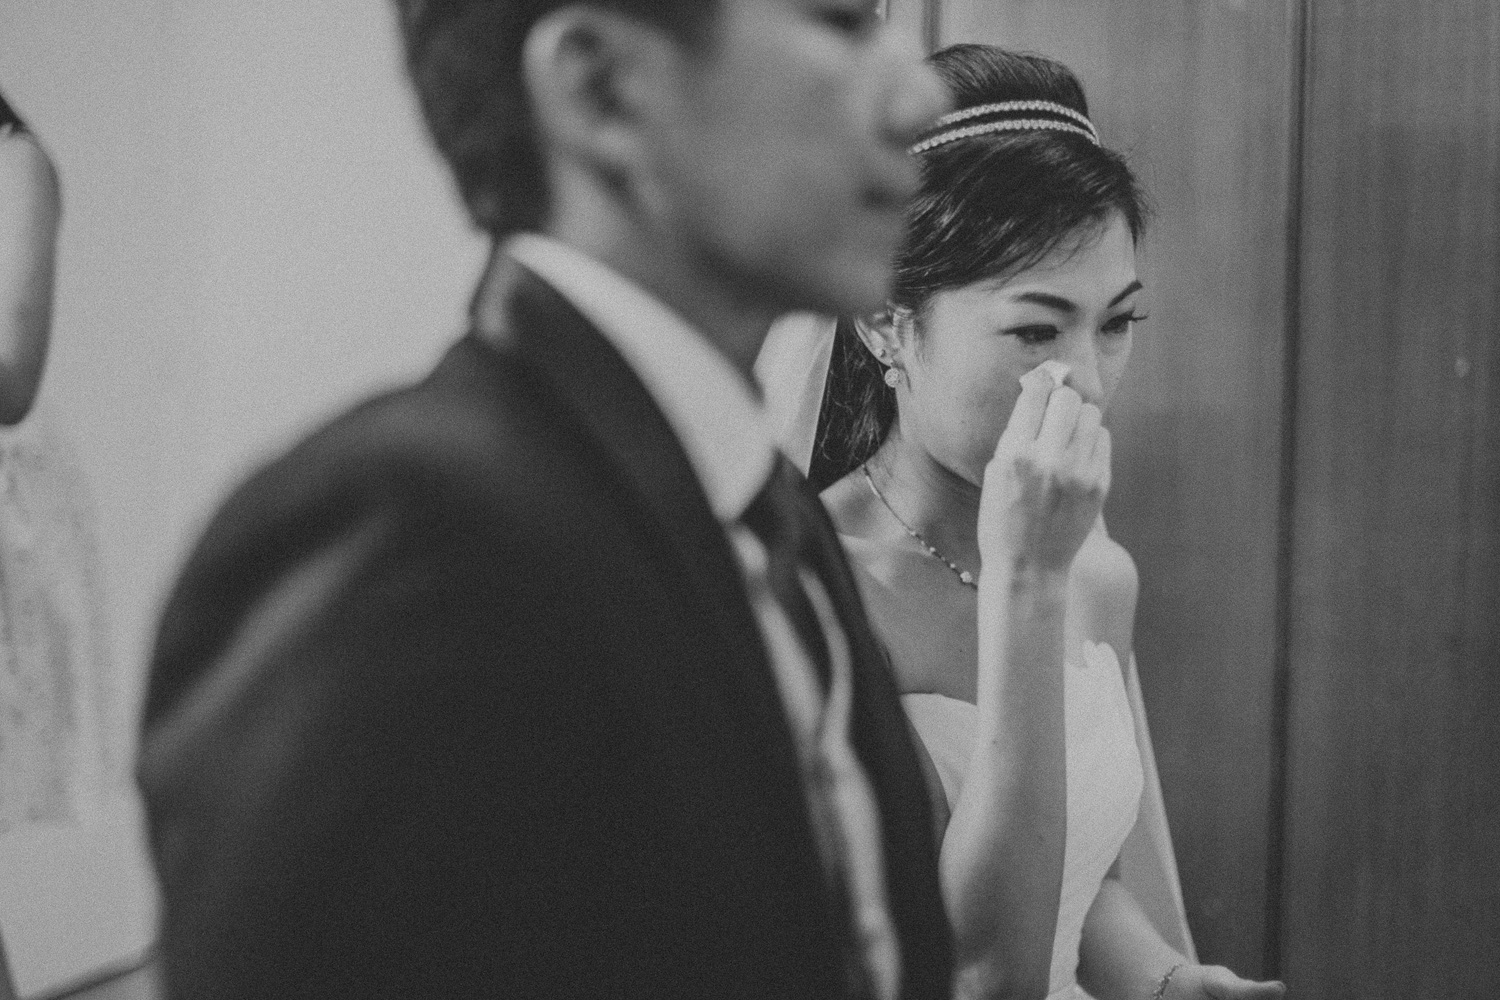 bittersweet photography Singapore wedding photographer jonathan 39